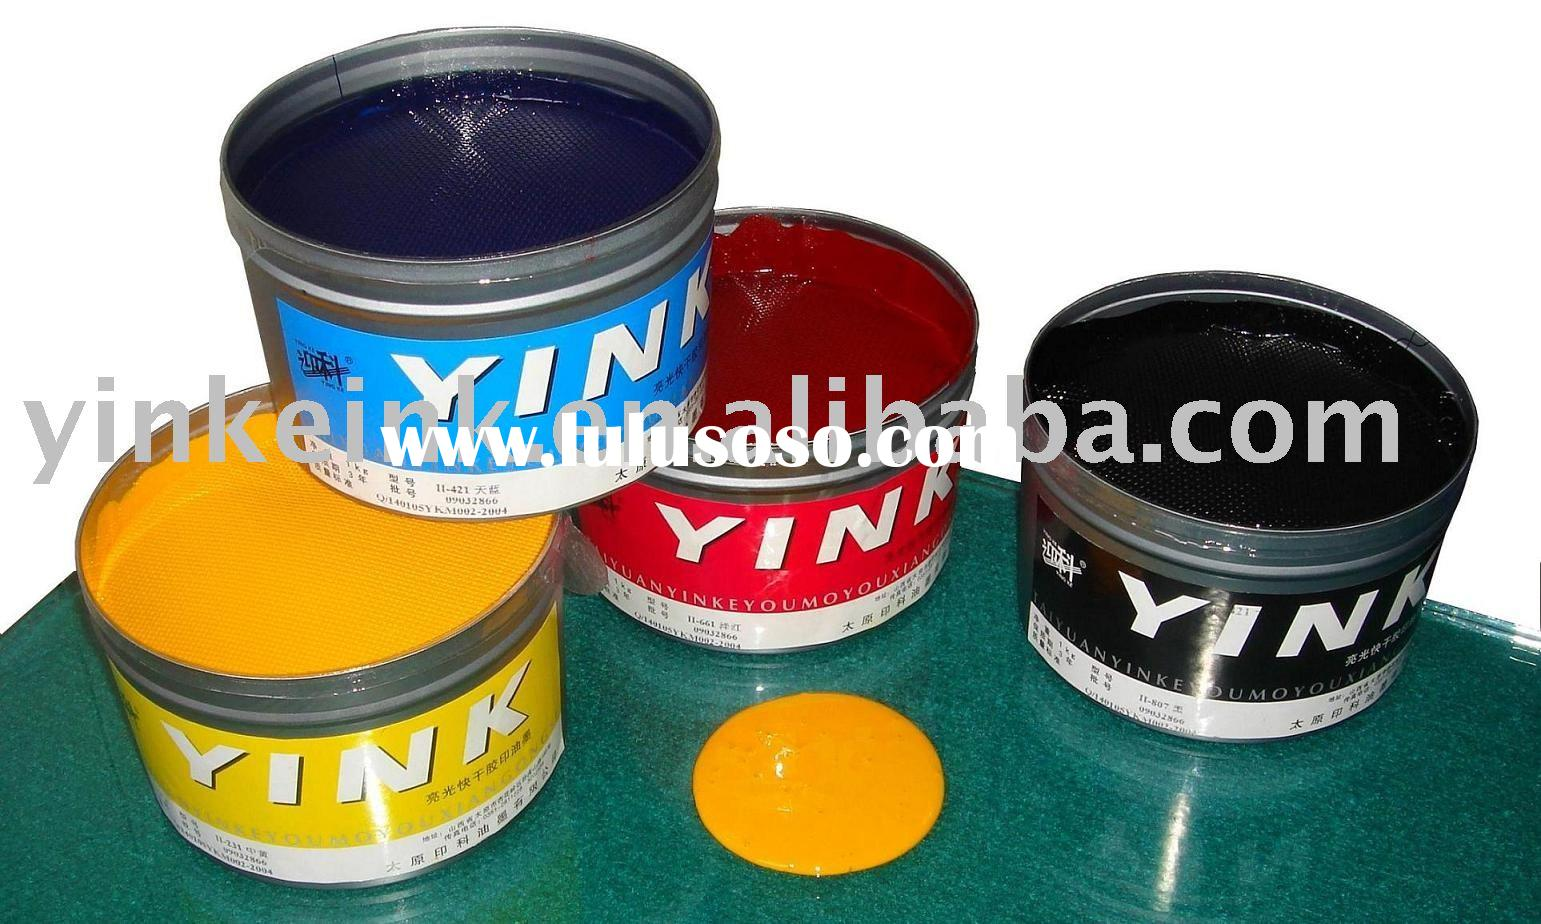 High gloss & quick dry sheetfed offset printing Ink